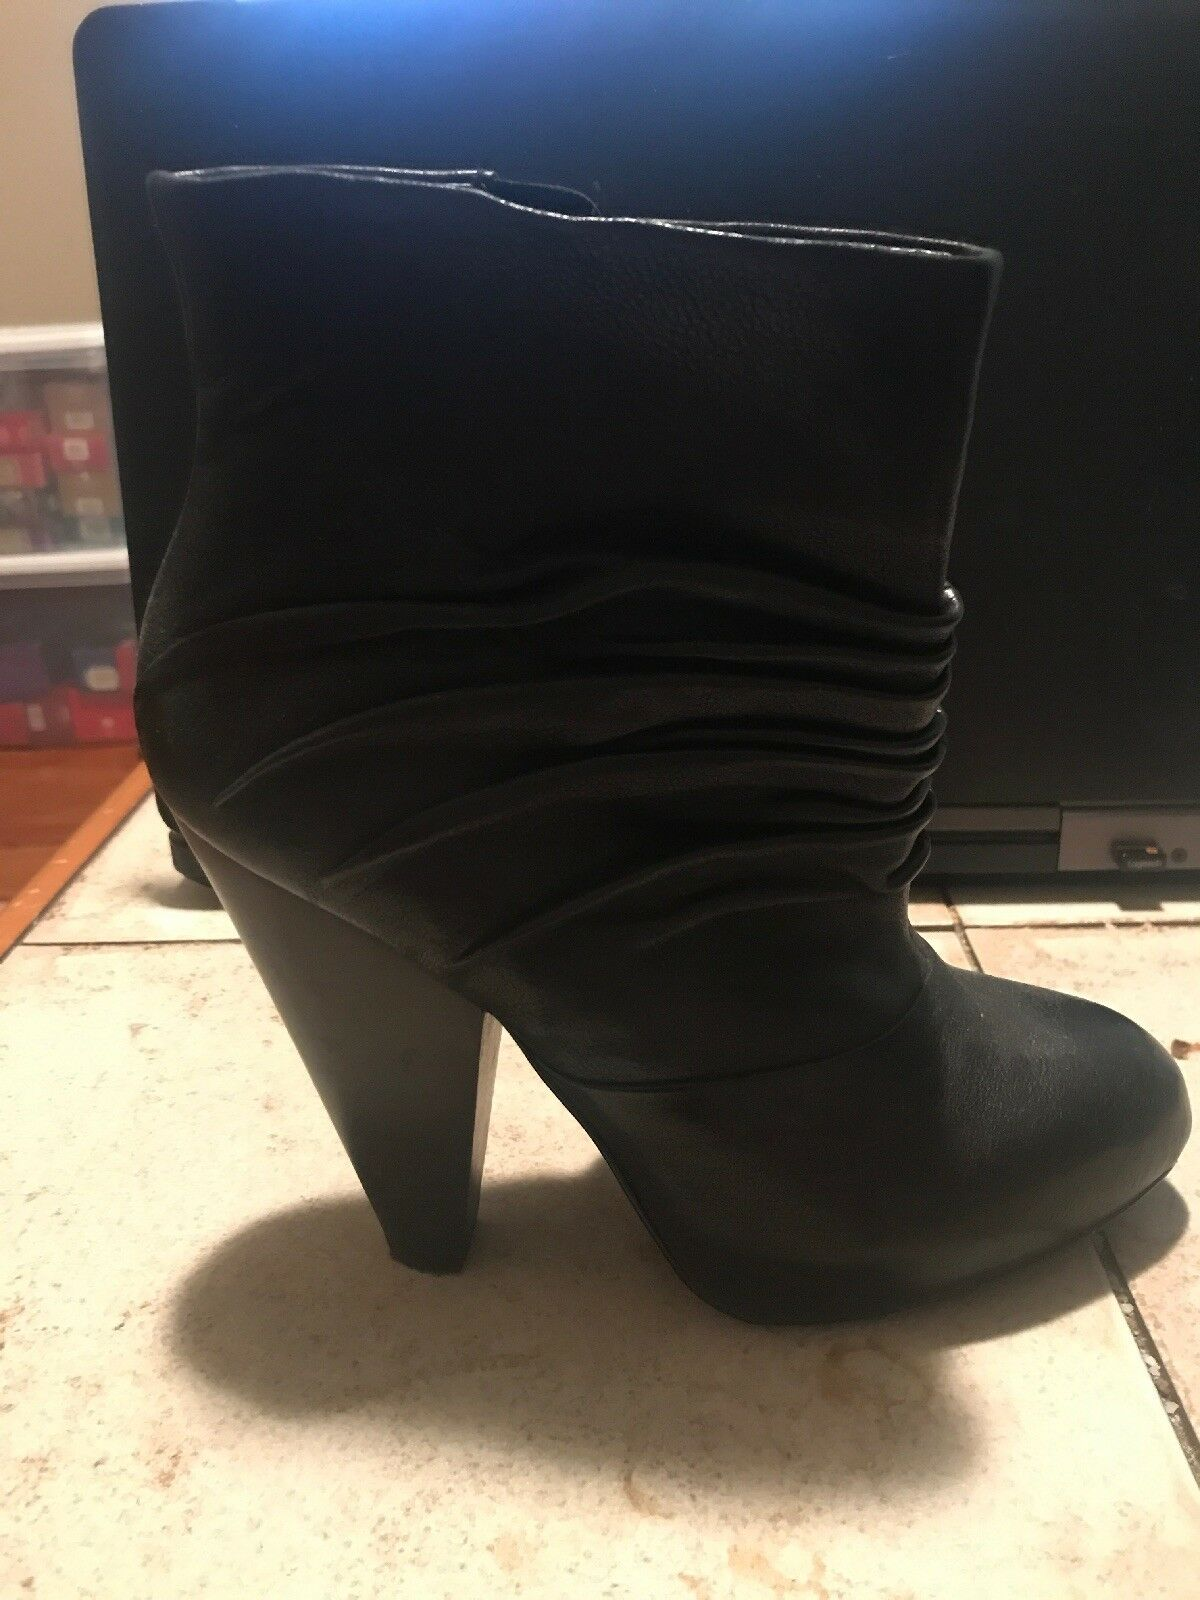 FERGIE BRAND BLACK LEATHER BOOTIES  GREAT LOOKING STYLE SIZE 6.5 4 inch heel EUC